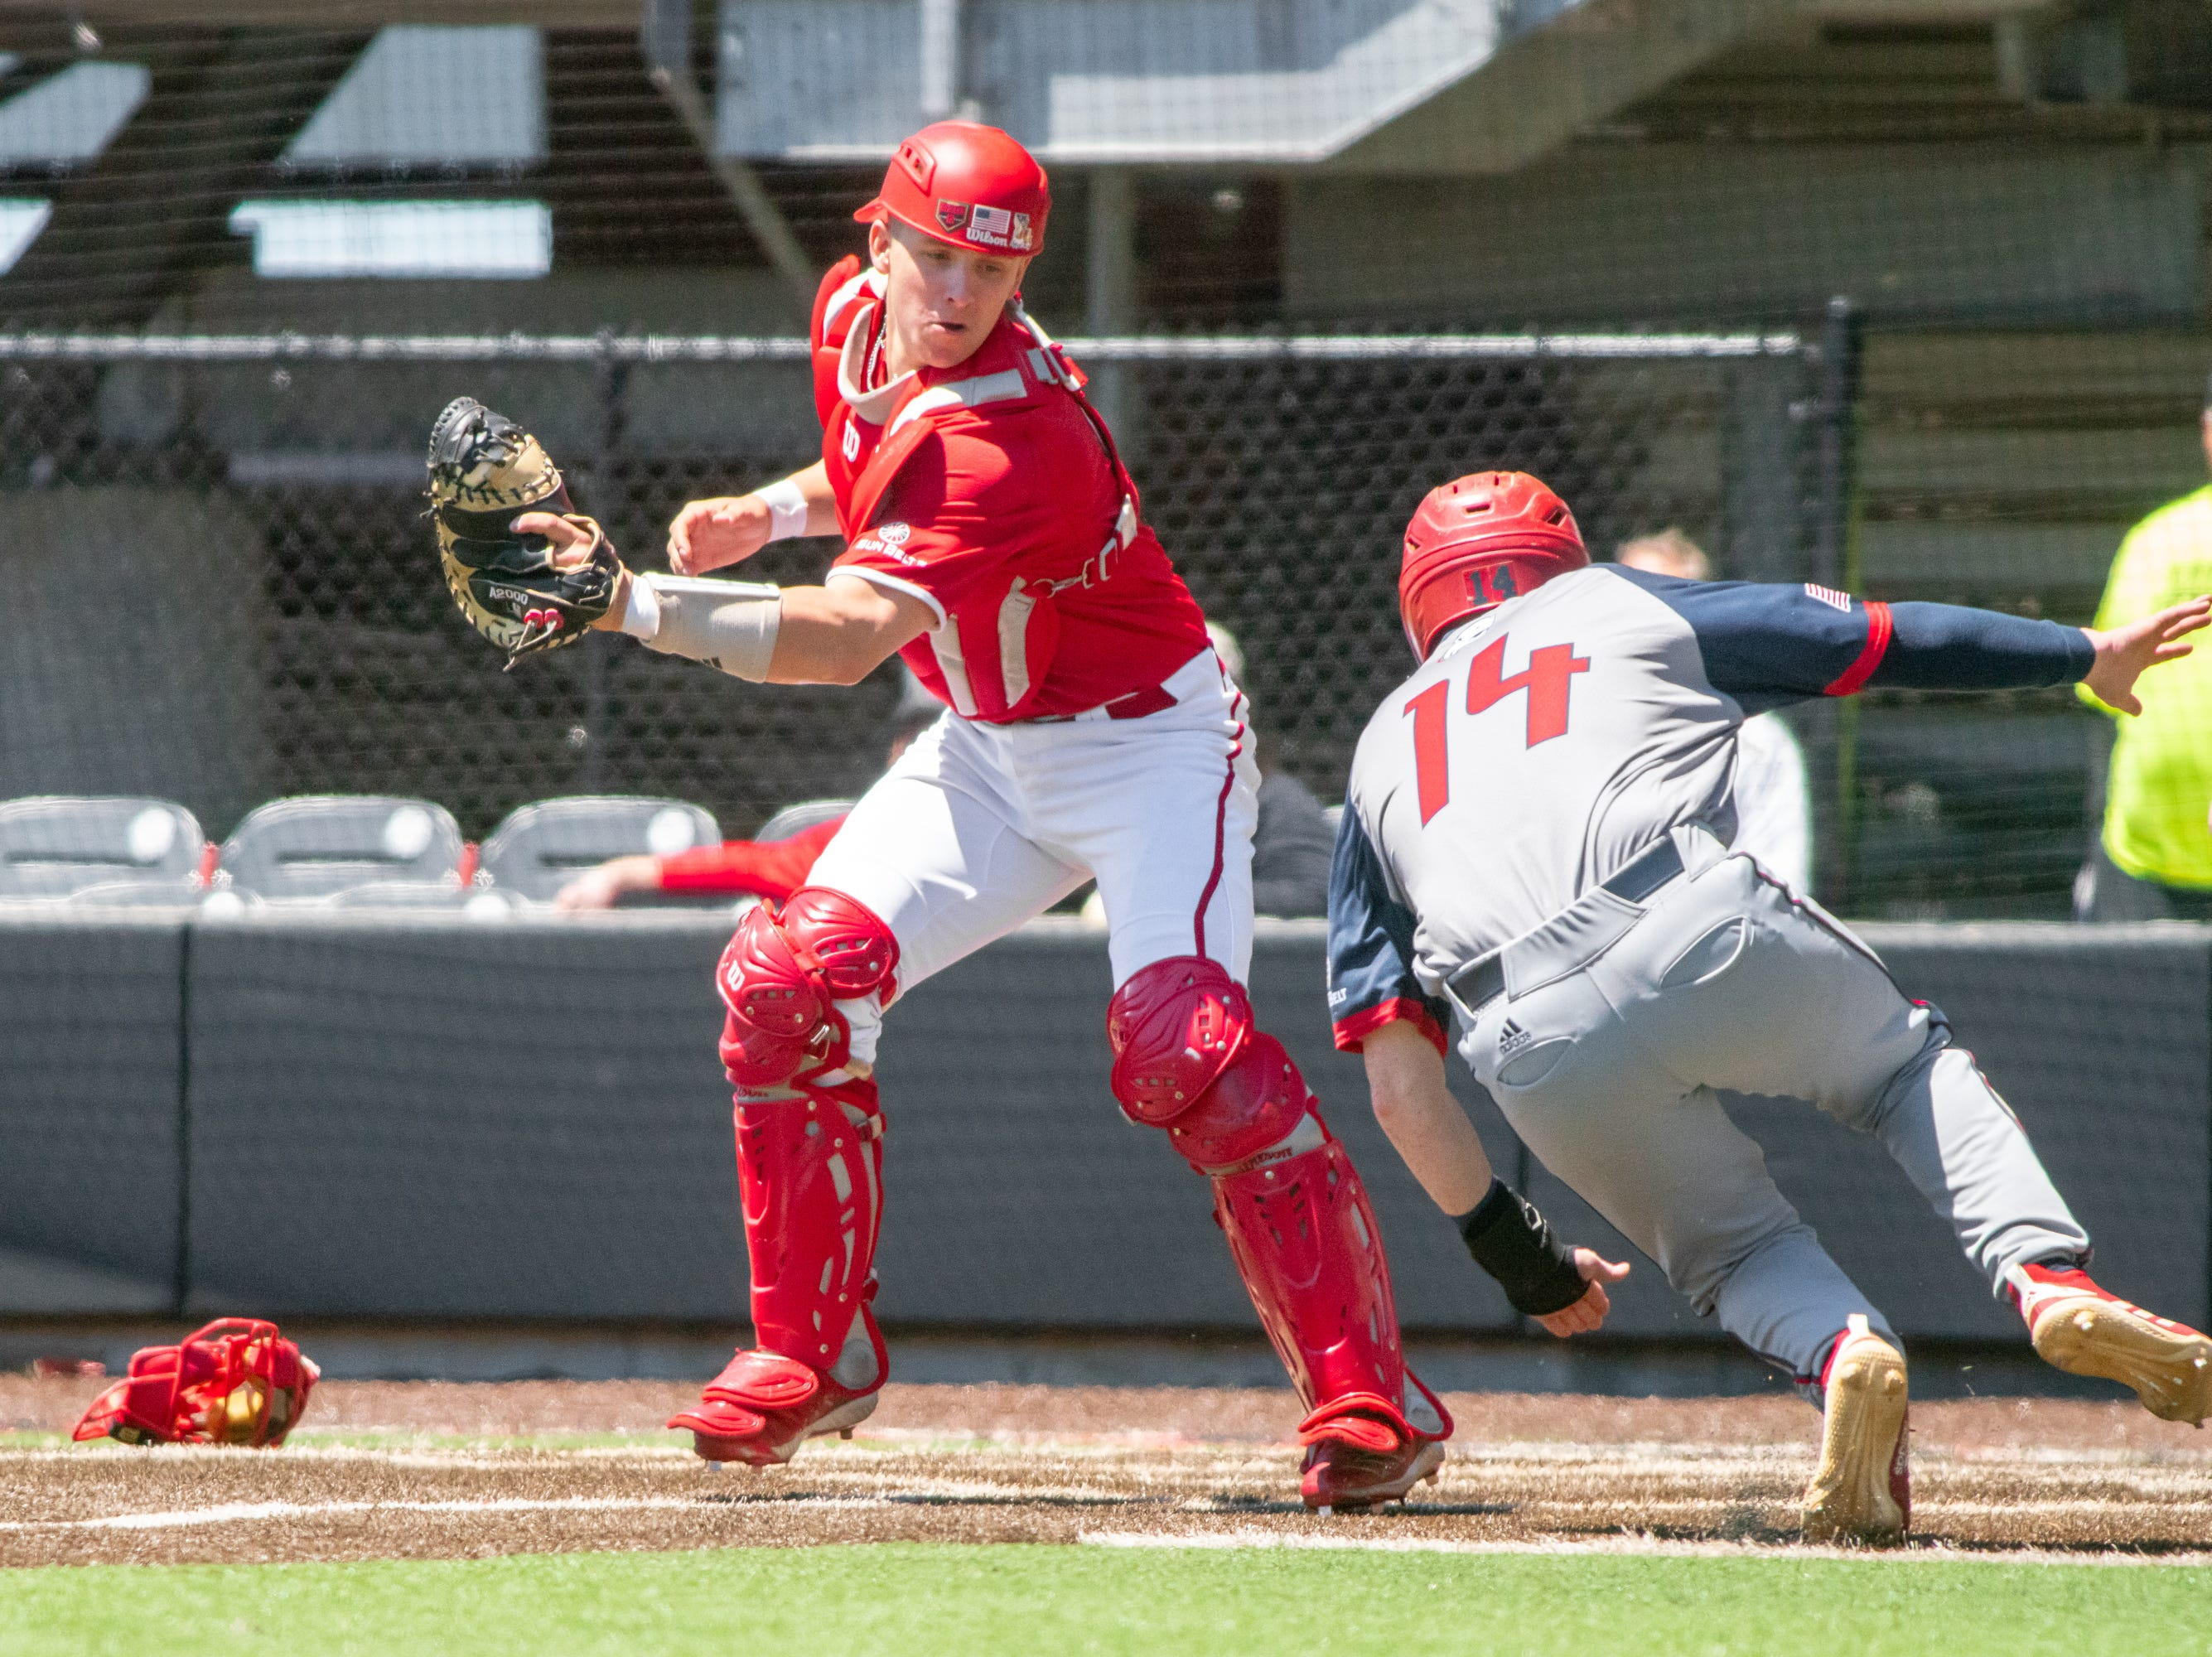 """UL's catcher Kole McKinnon attempts to get the runner out at home plate as the Ragin' Cajuns take on the South Alabama Jaguars at M.L. """"Tigue"""" Moore Field on Sunday, April 14, 2019."""